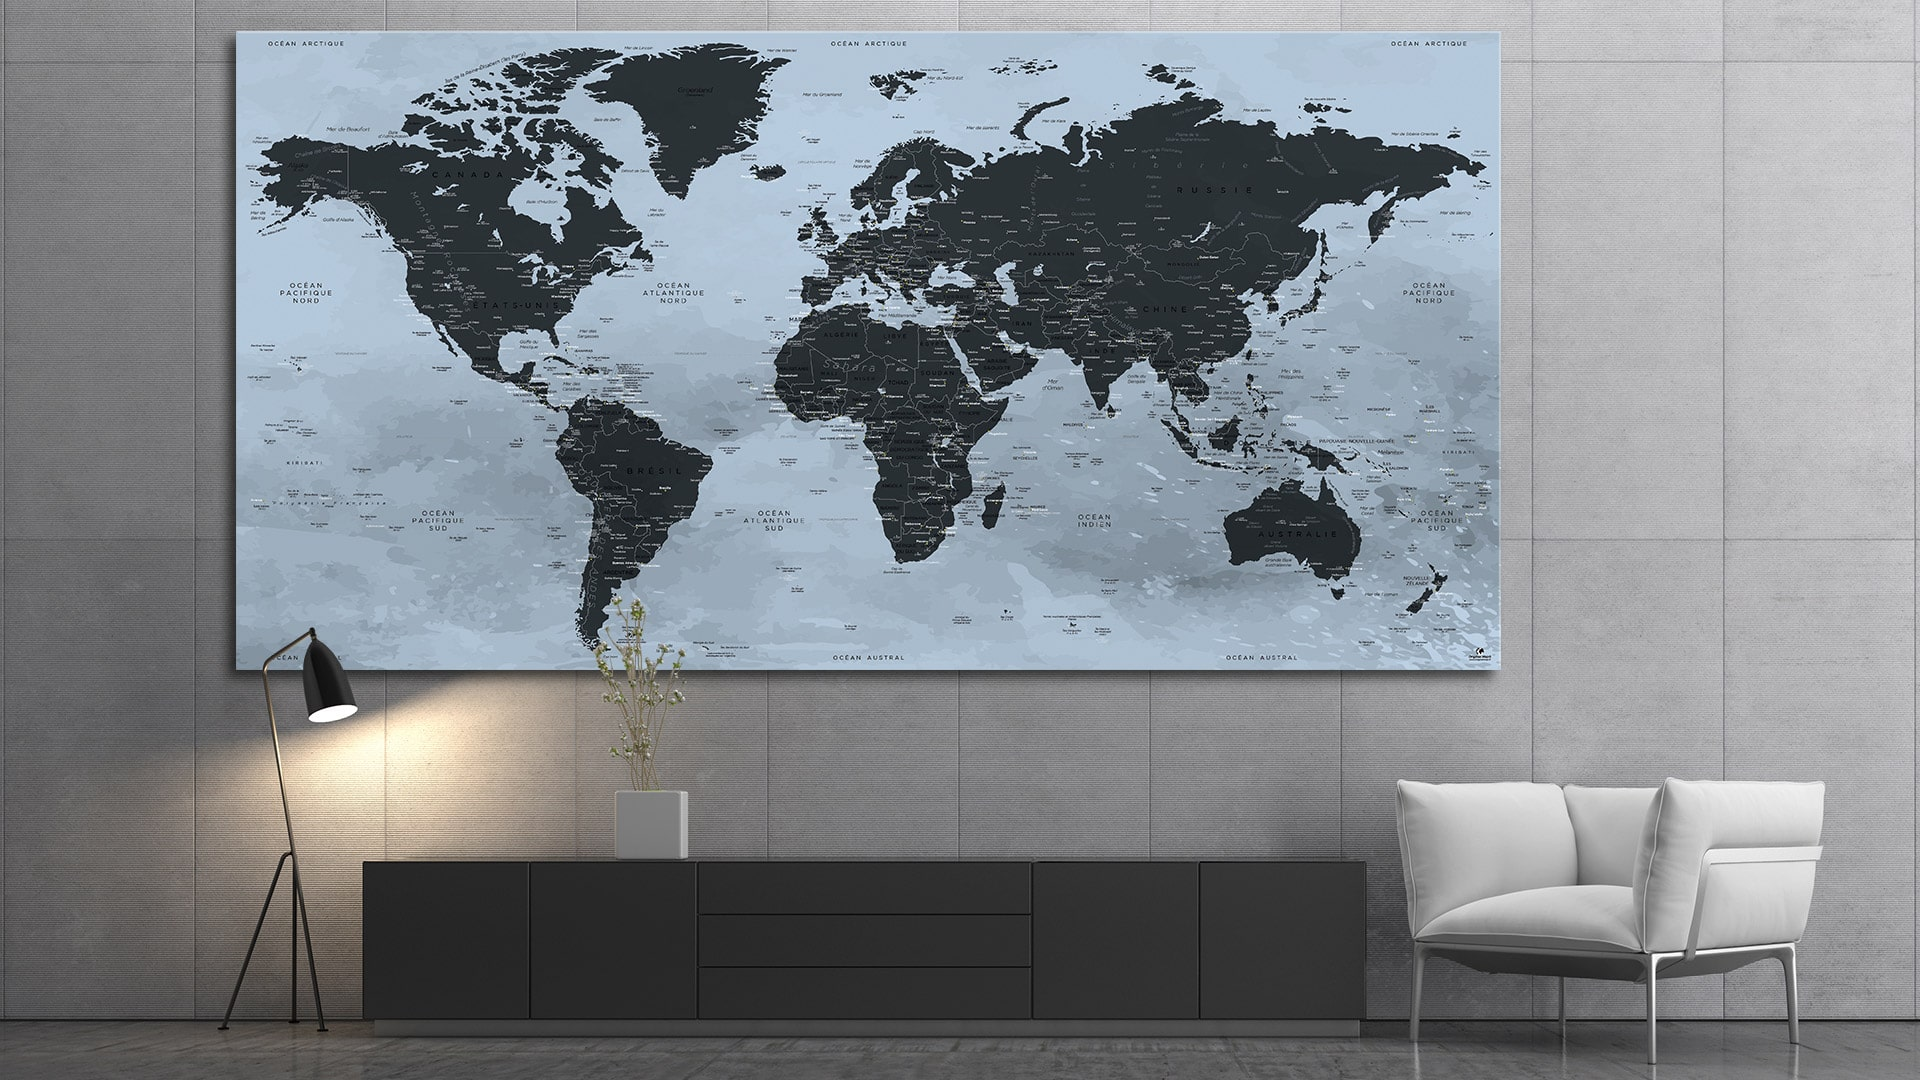 carte du monde tableau mappemonde tableau world map. Black Bedroom Furniture Sets. Home Design Ideas